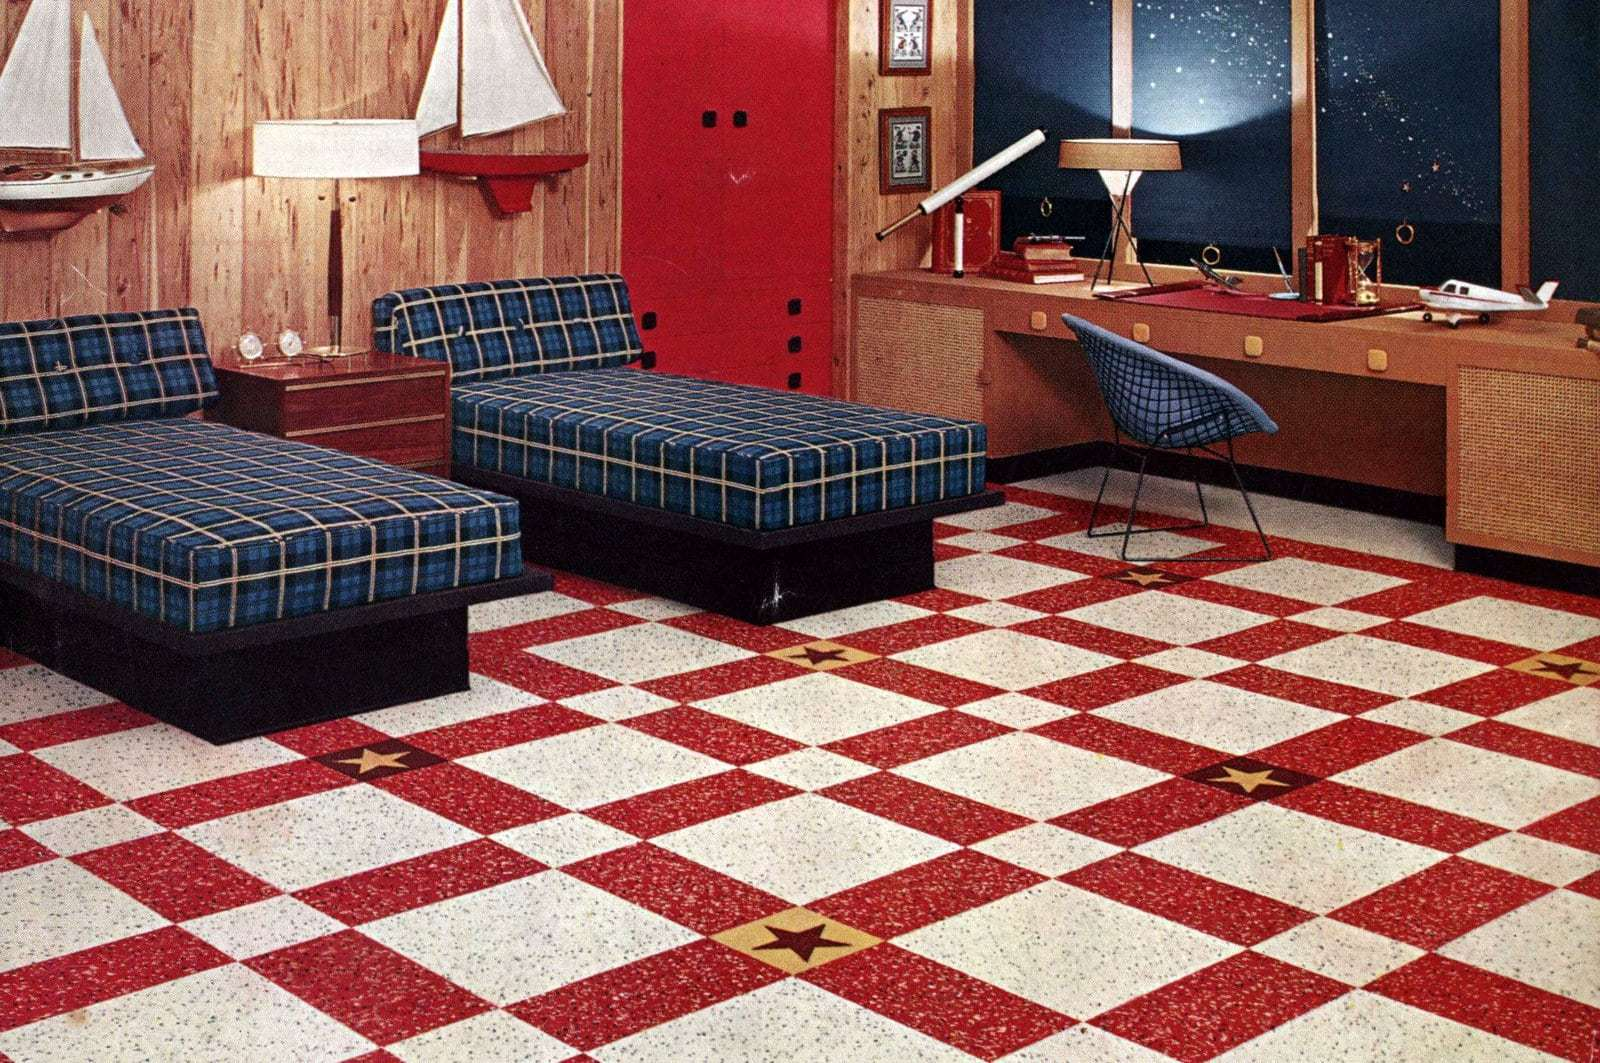 Vintage style, loud and proud! See 12 bold striped & checkerboard floors from 1950s homes